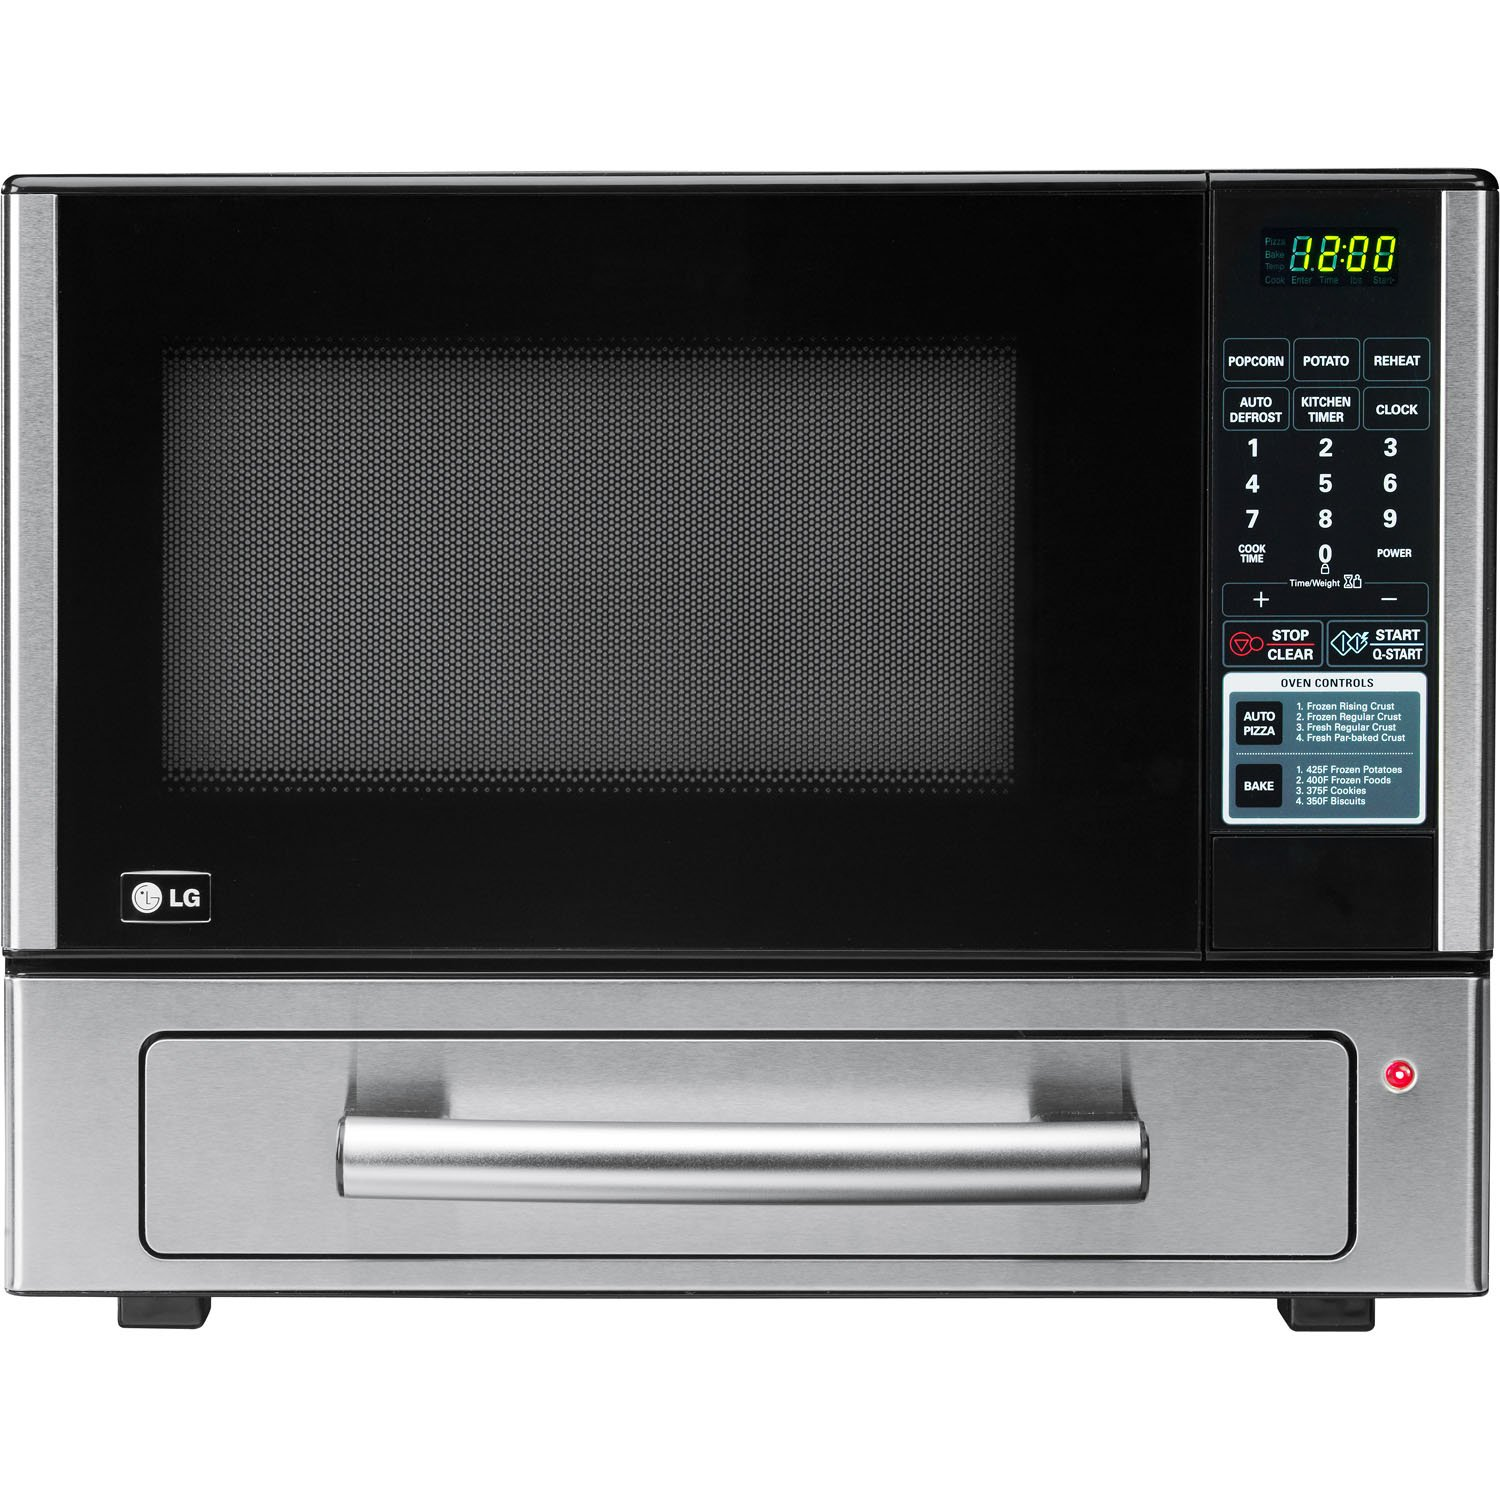 Amazon.com: LG LCSP1110ST 1.1 Cu Ft Counter Top Combo Microwave and Baking  Oven, Stainless Steel: Countertop Microwave Ovens: Kitchen & Dining